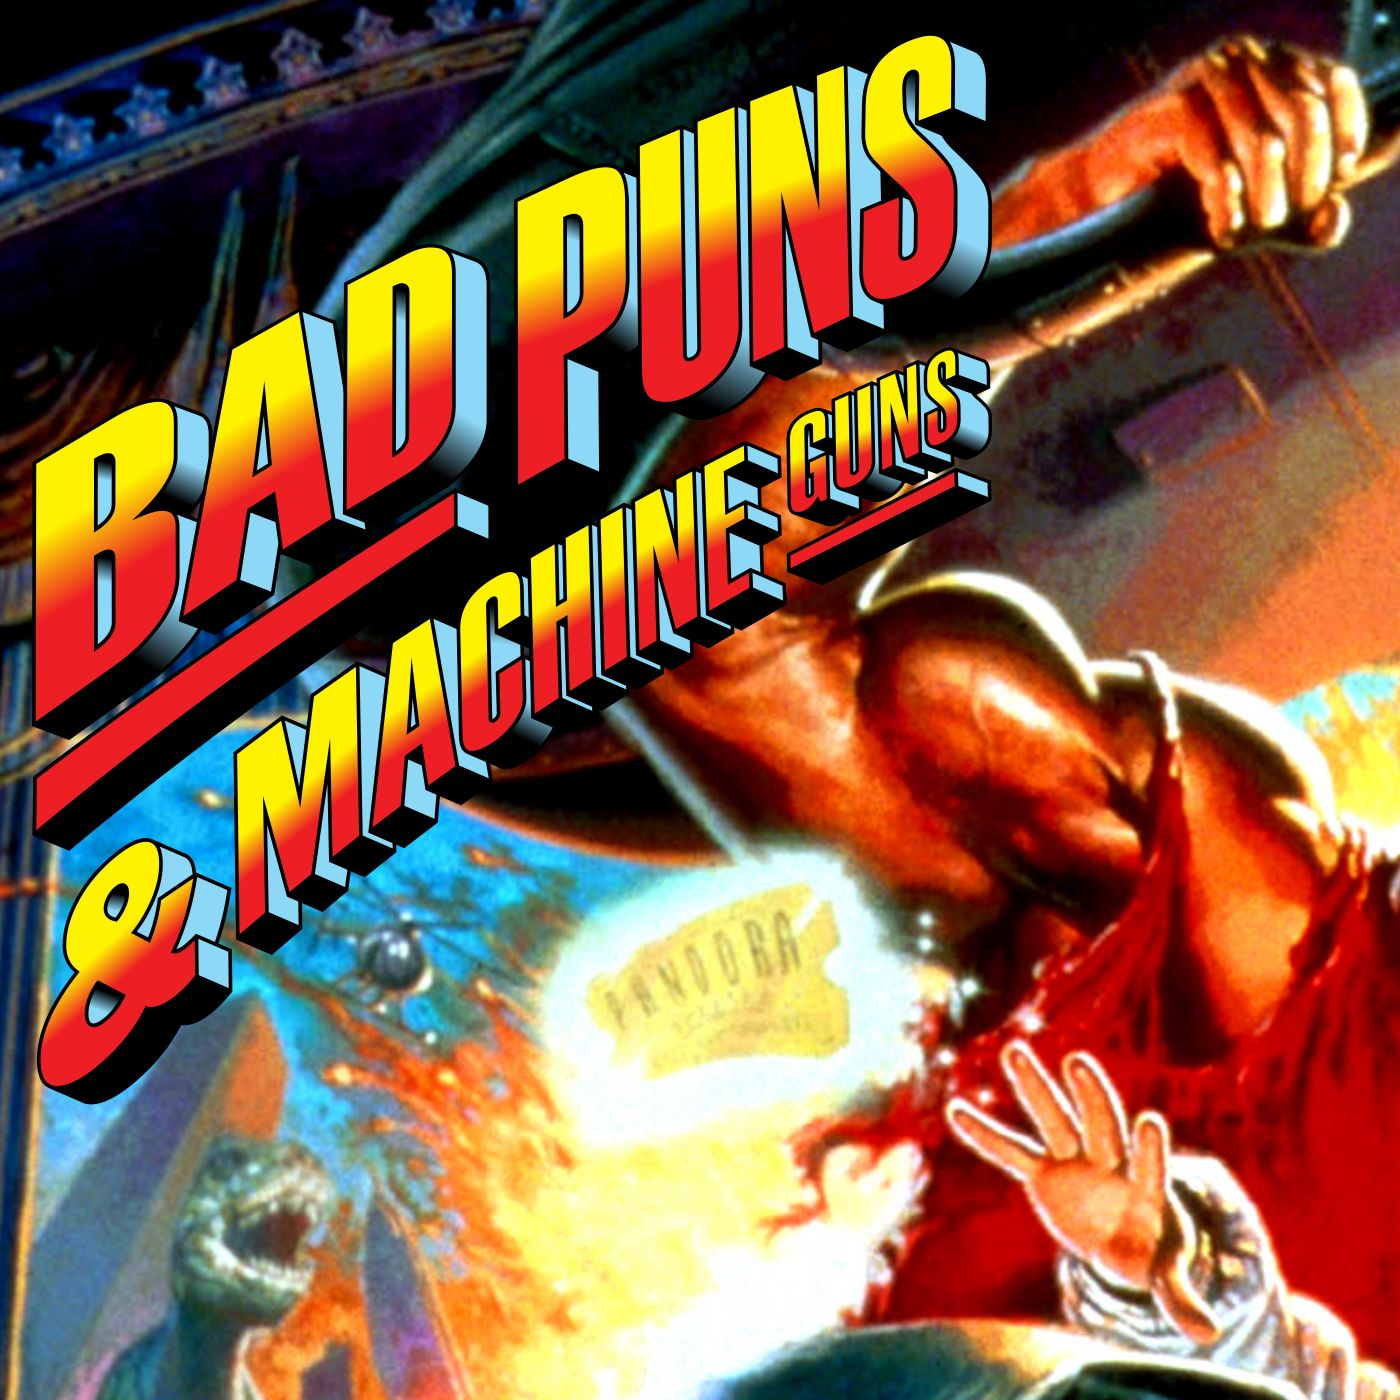 Bad Puns and Machine Guns Podcast